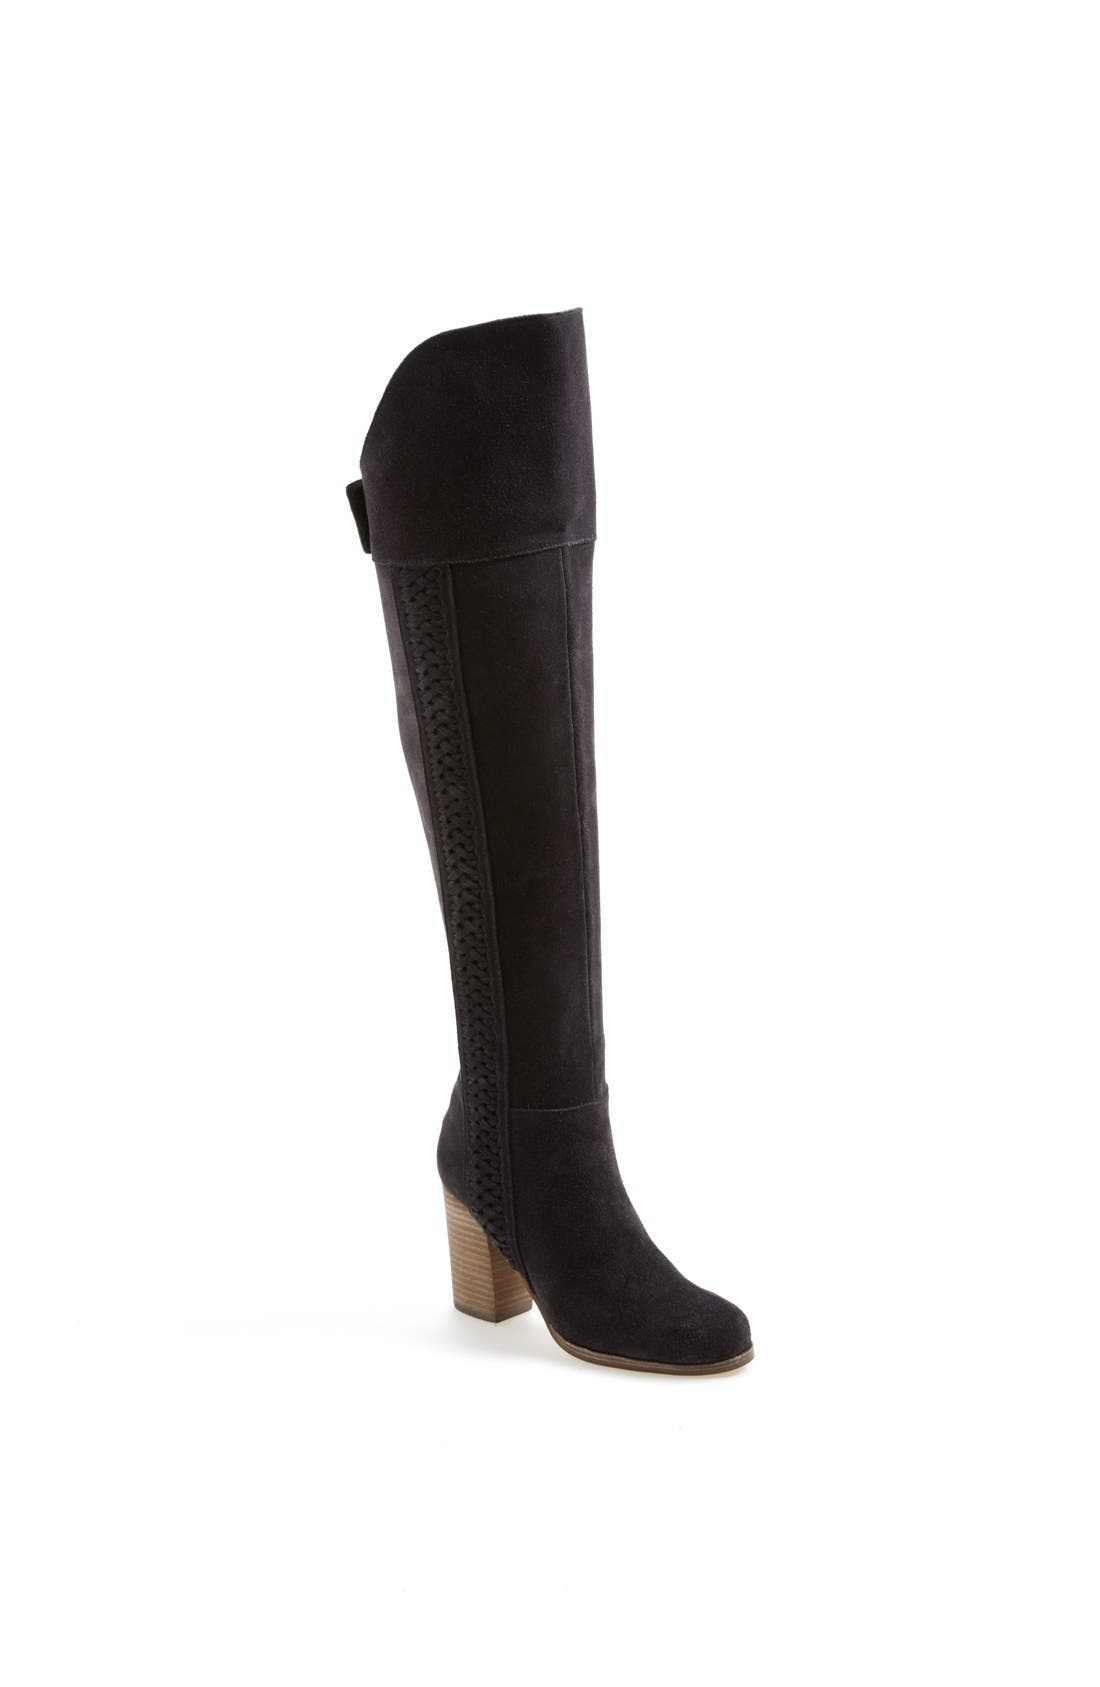 Alternate Image 1 Selected - DV by Dolce Vita 'Myer' Over the Knee Boot (Women)